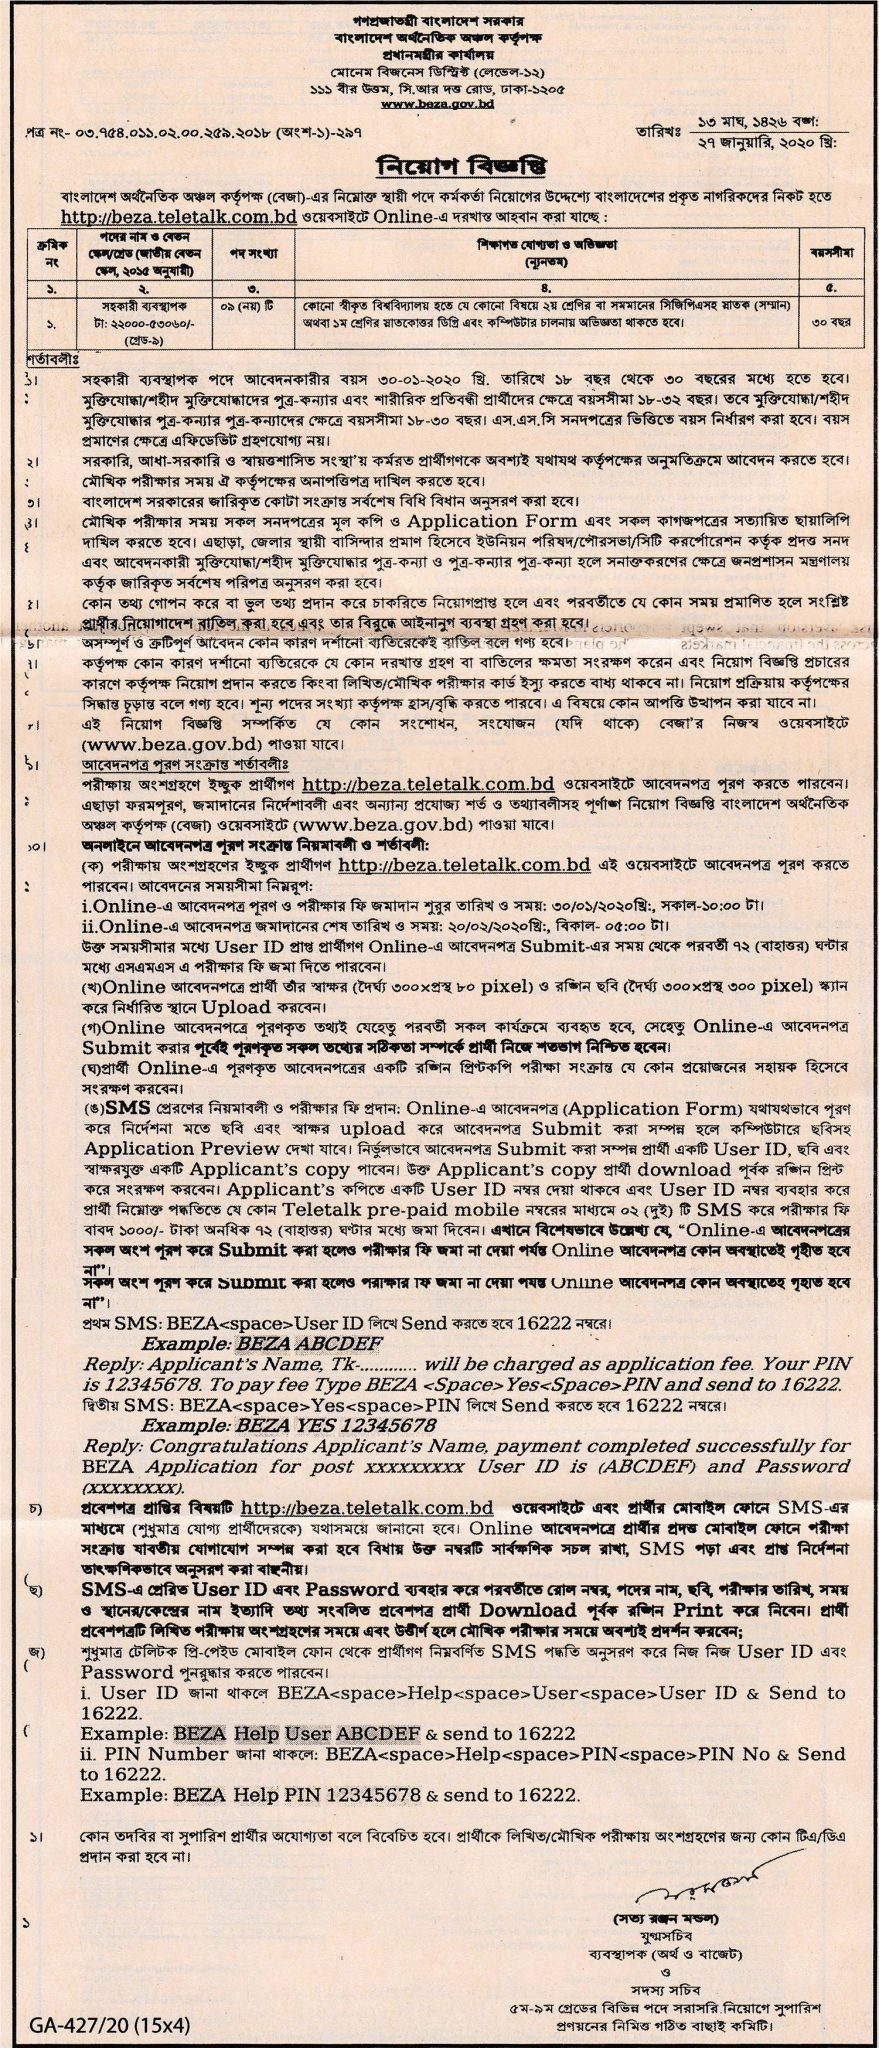 Bangladesh-Economic-Zones-Authority-Job-Circular-2020